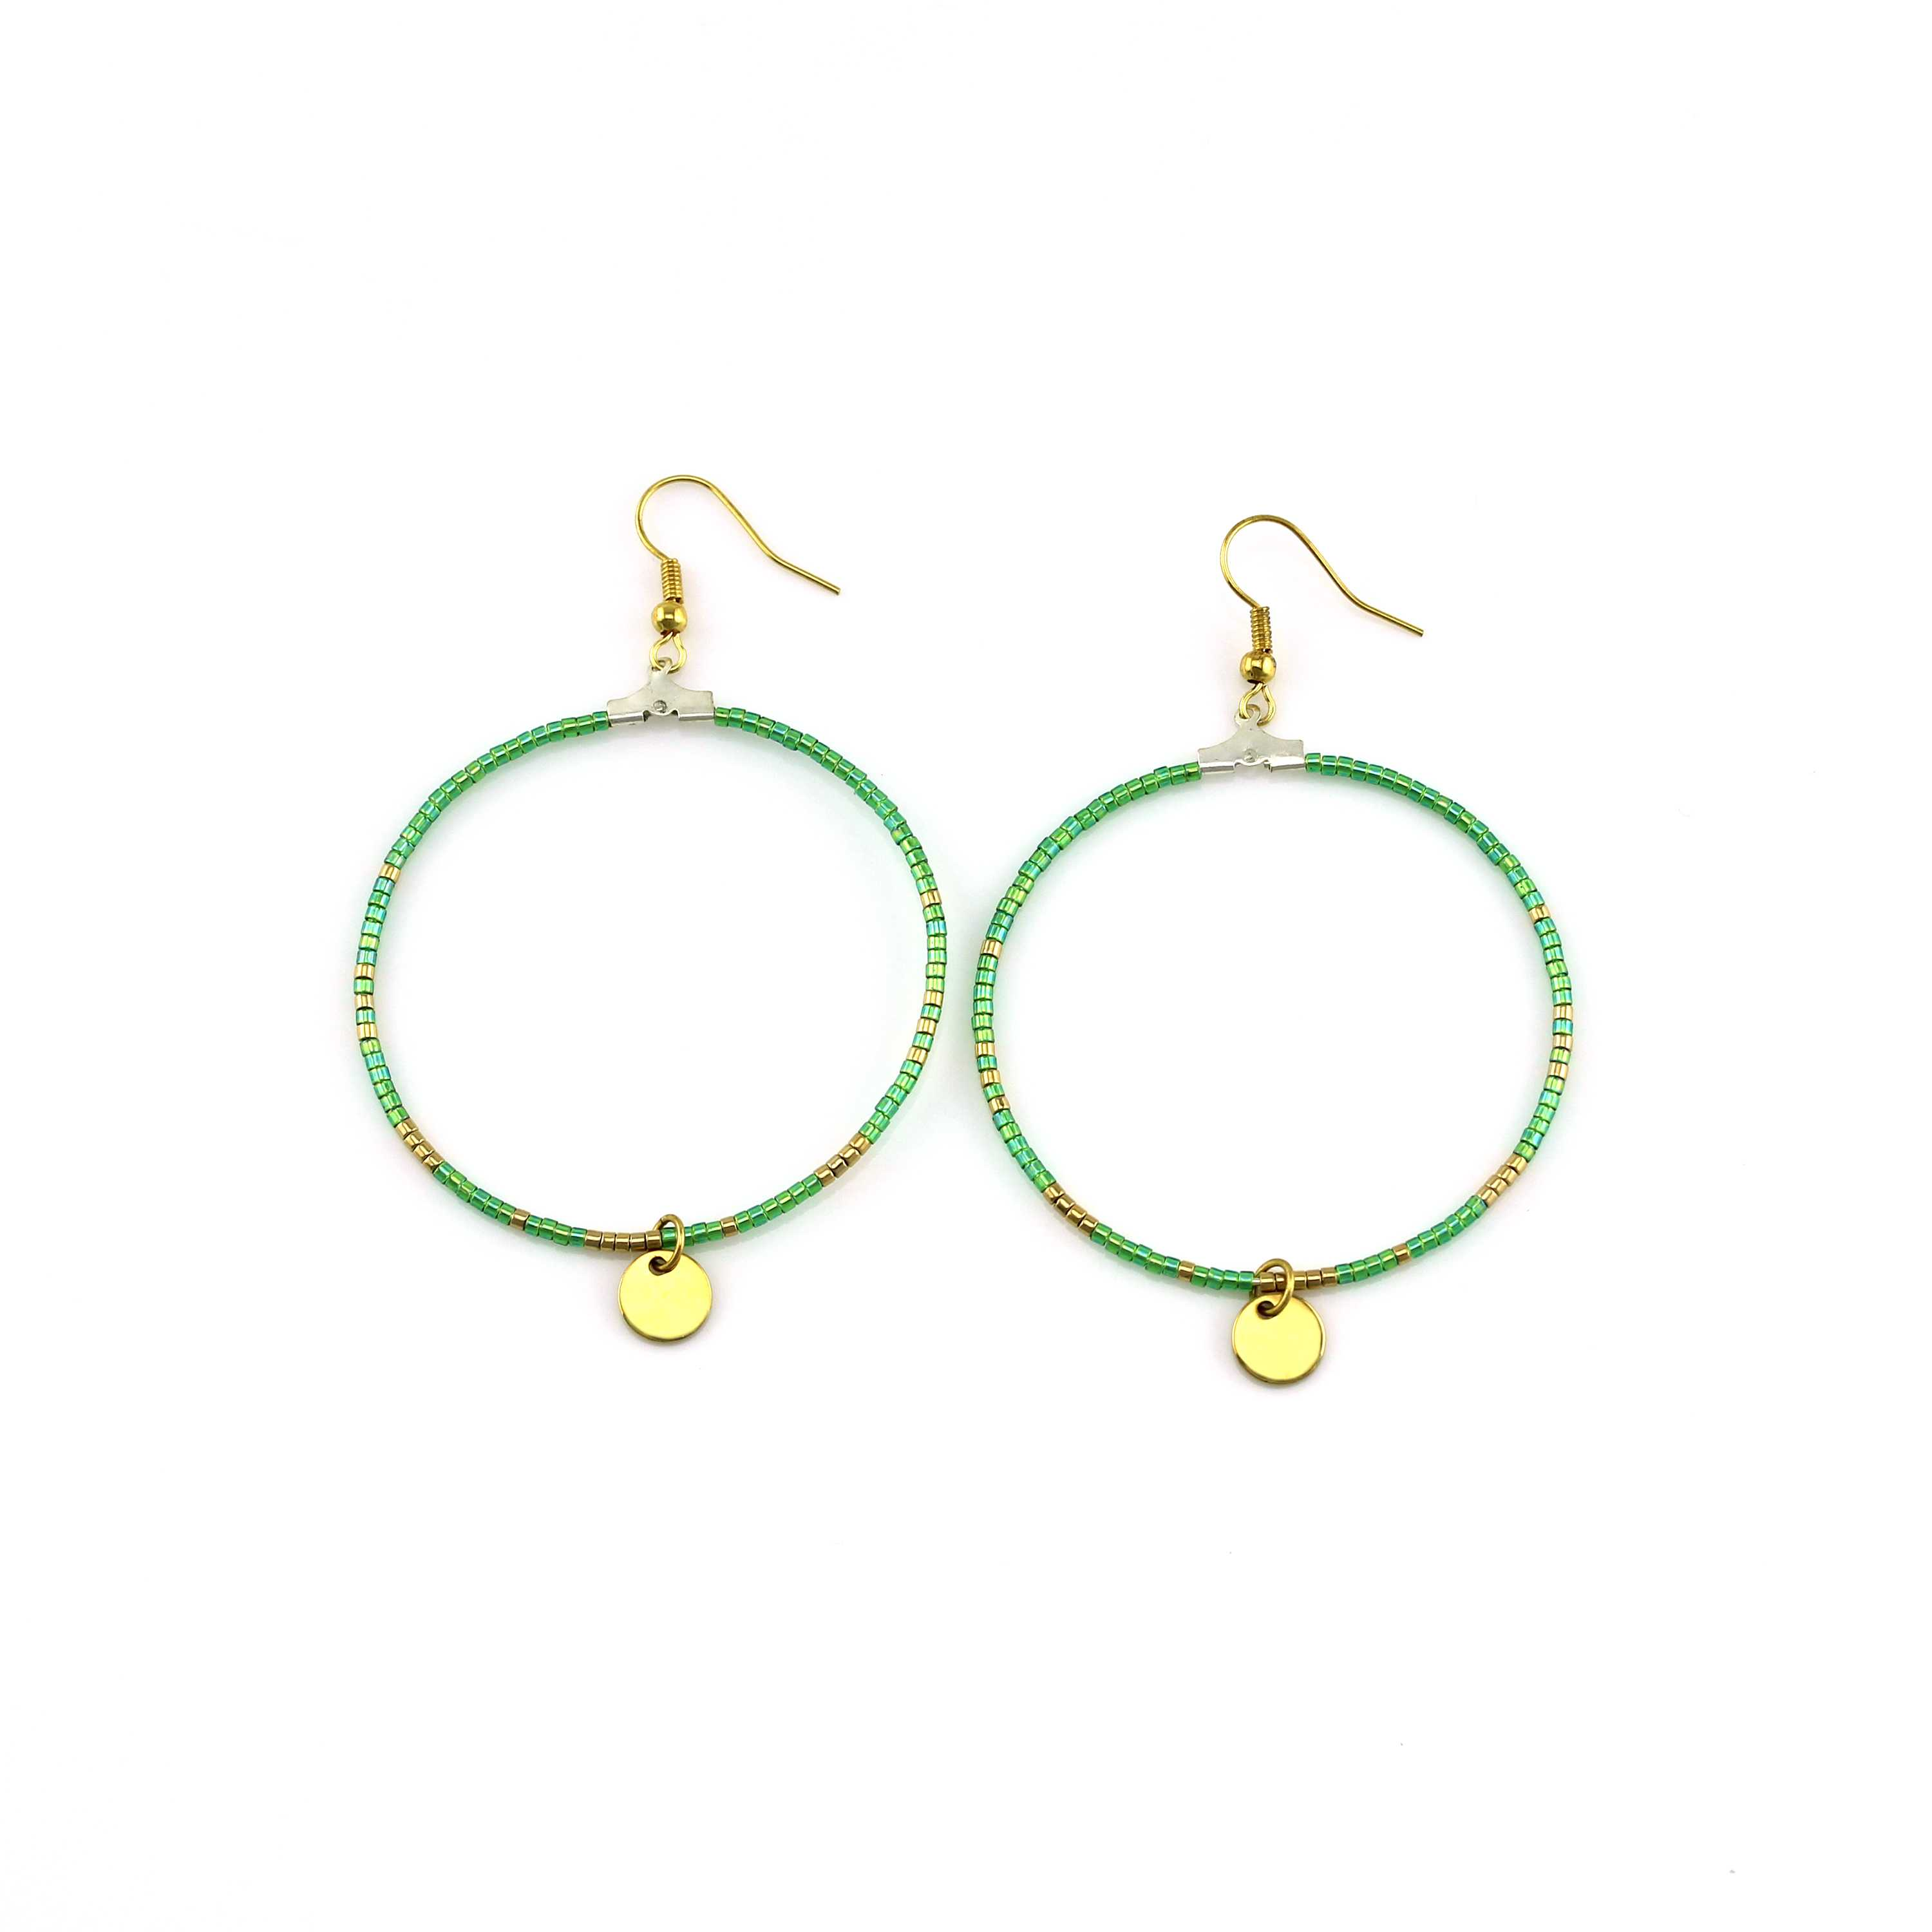 handmade green color miyuki beads hoop earrings